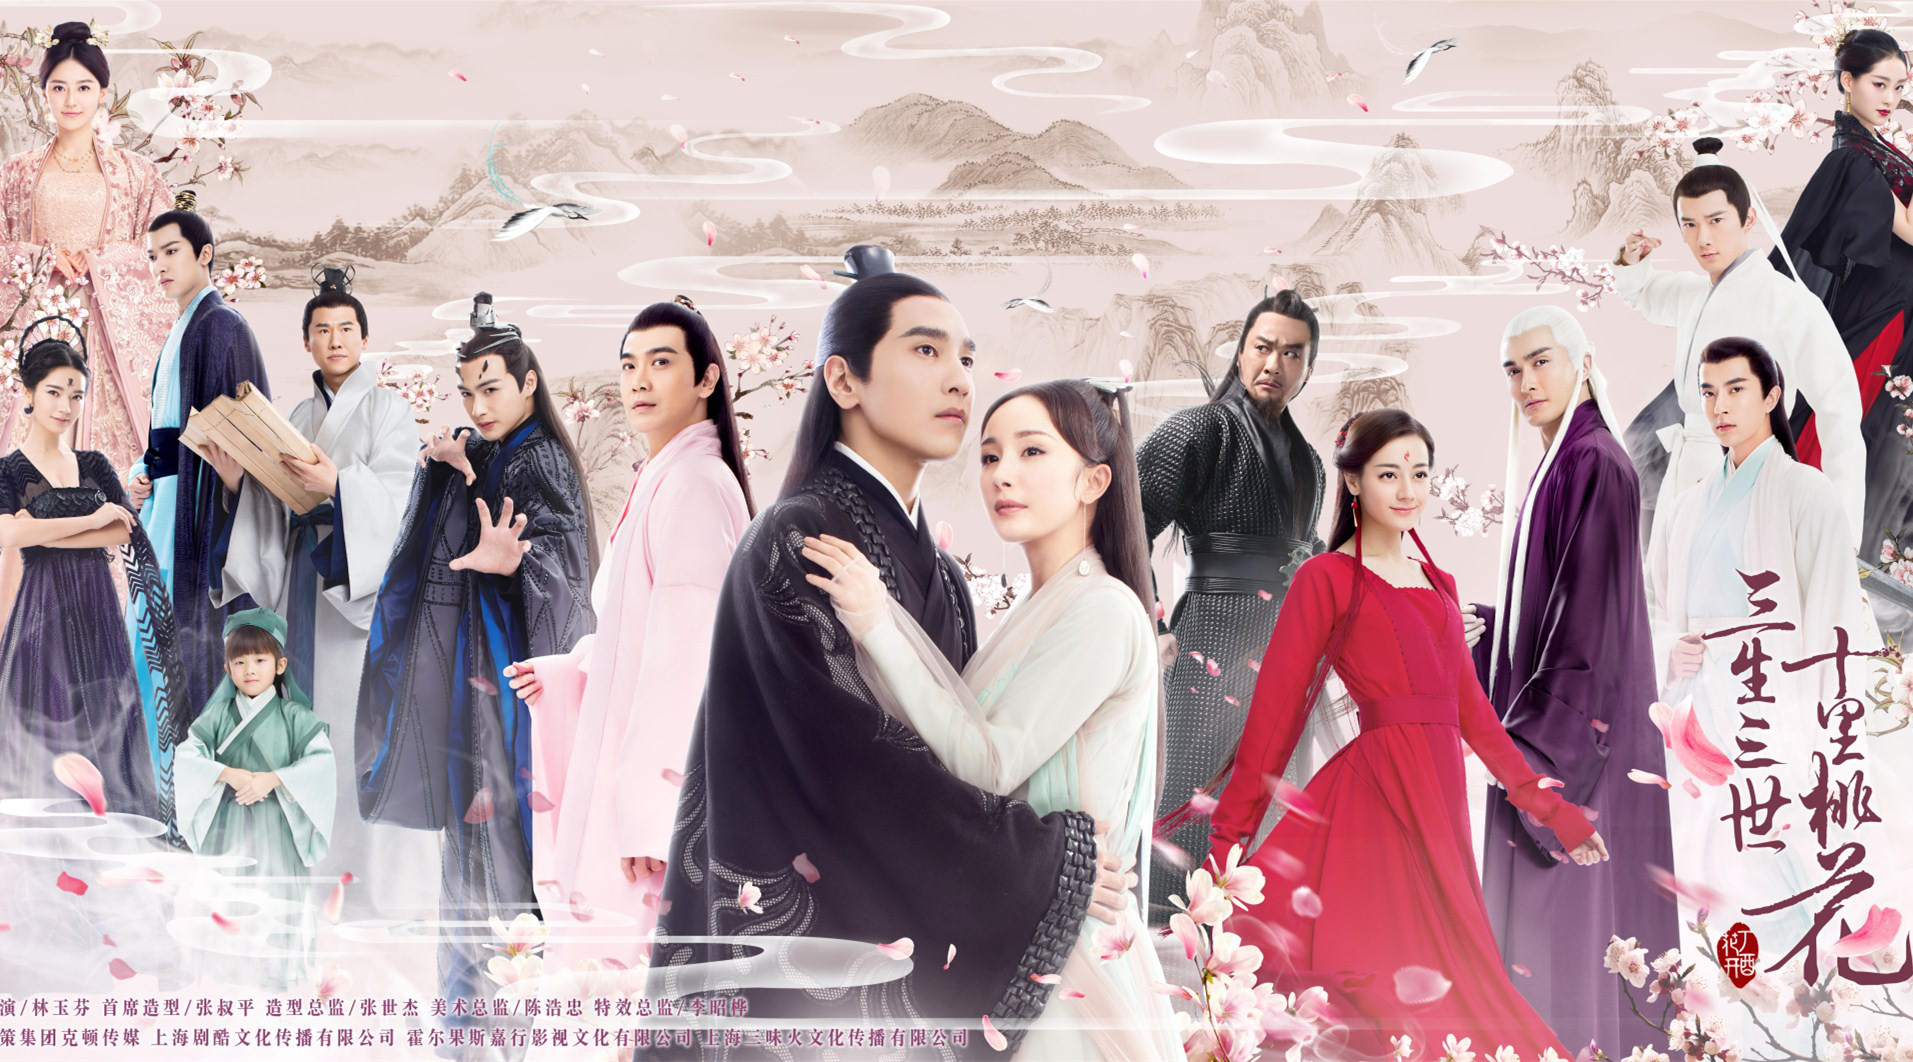 """3 years still hot, """"Three births, three worlds, and a decade of peach blossom"""" from Duong Mich surpasses Dilraba's film"""